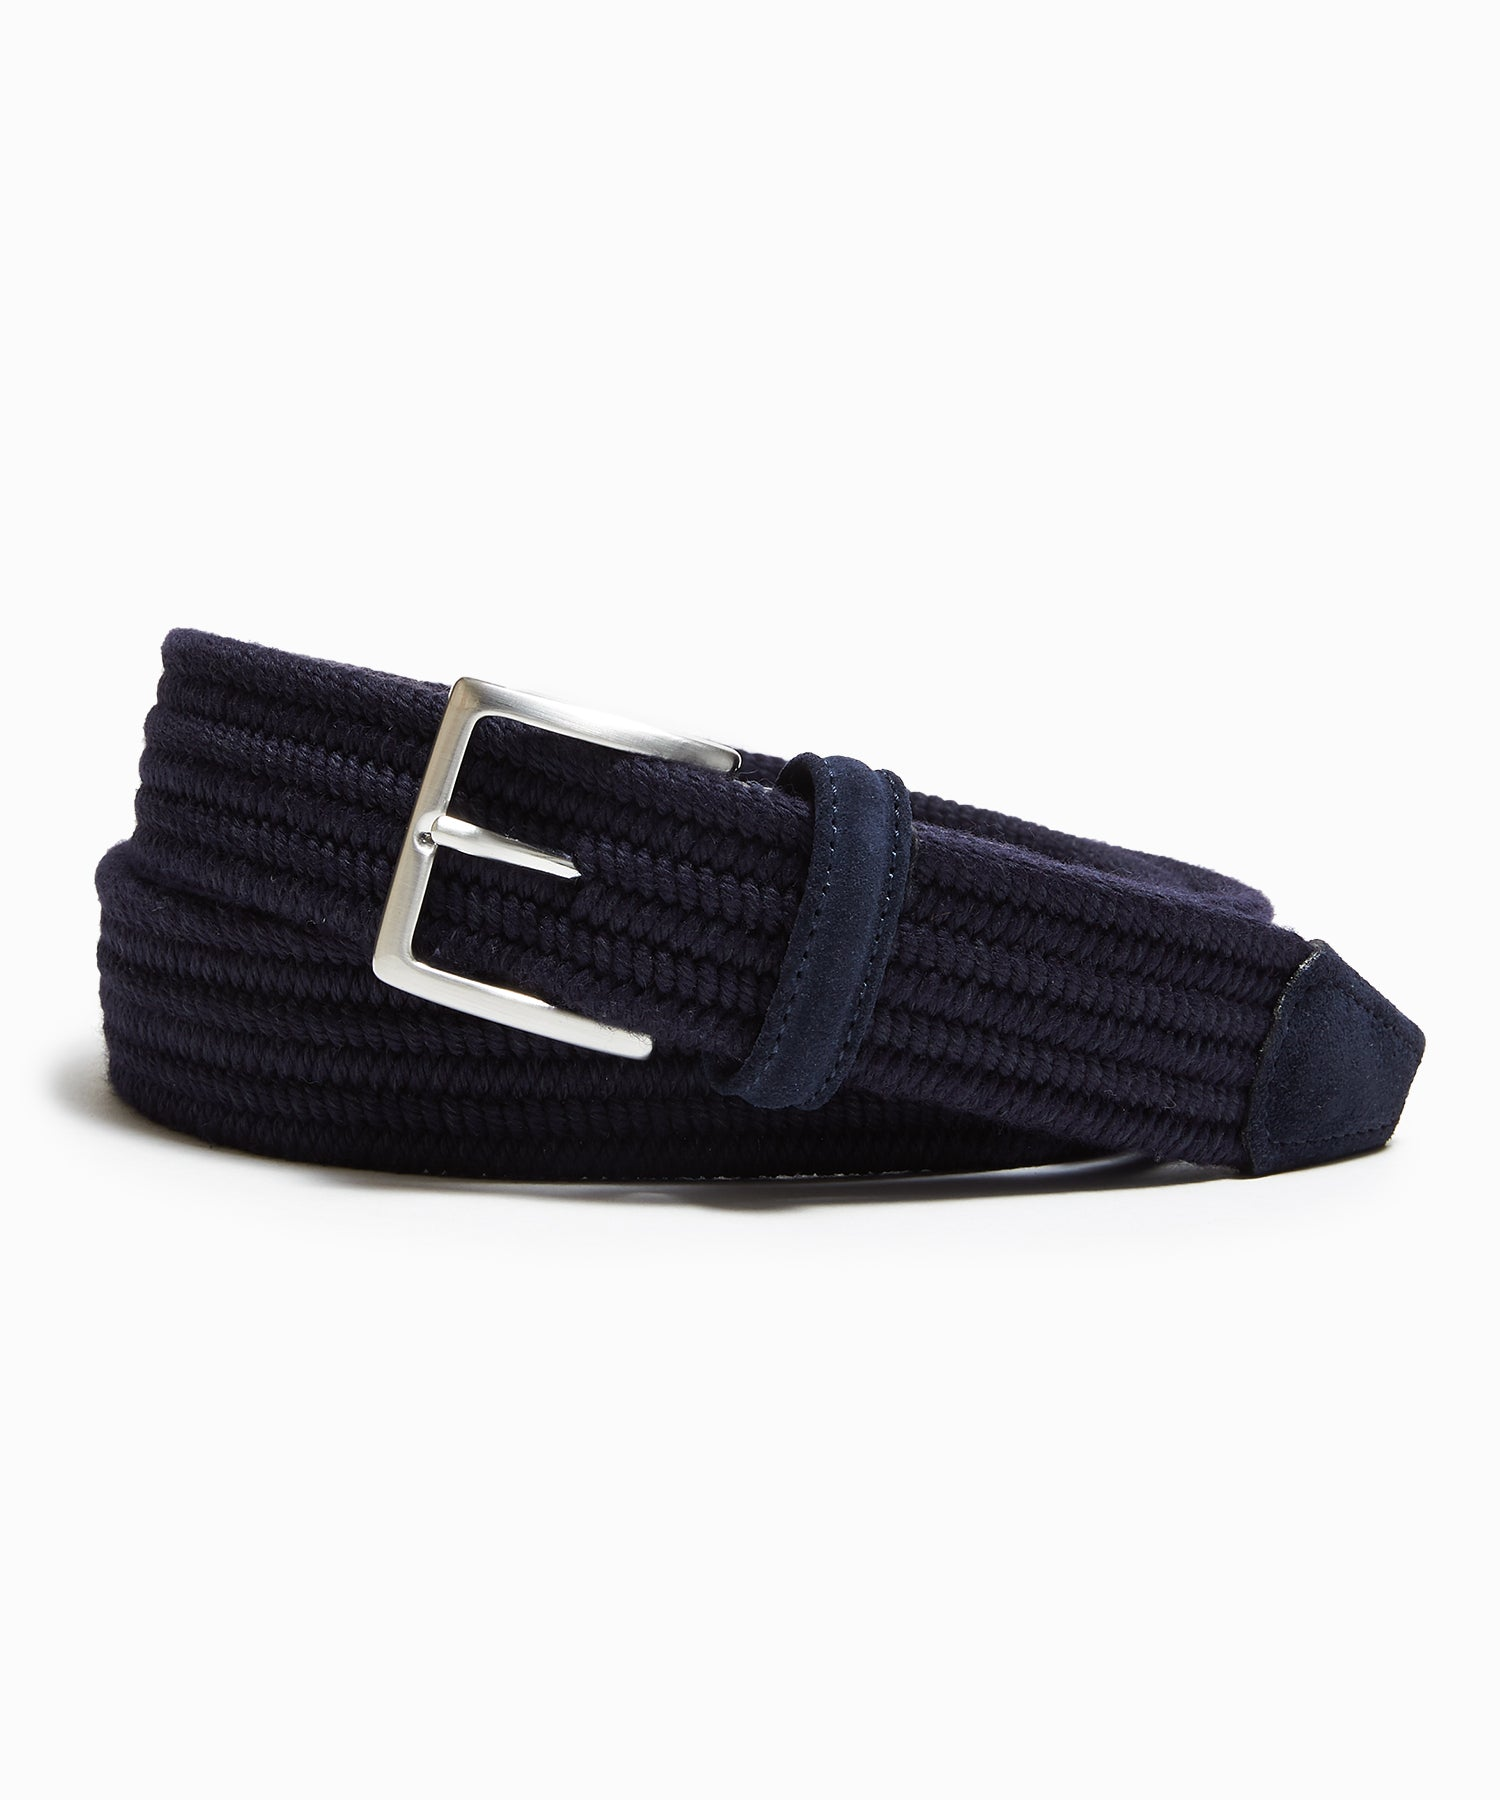 Anderson's Cashmere Stretch Woven Belt in Navy